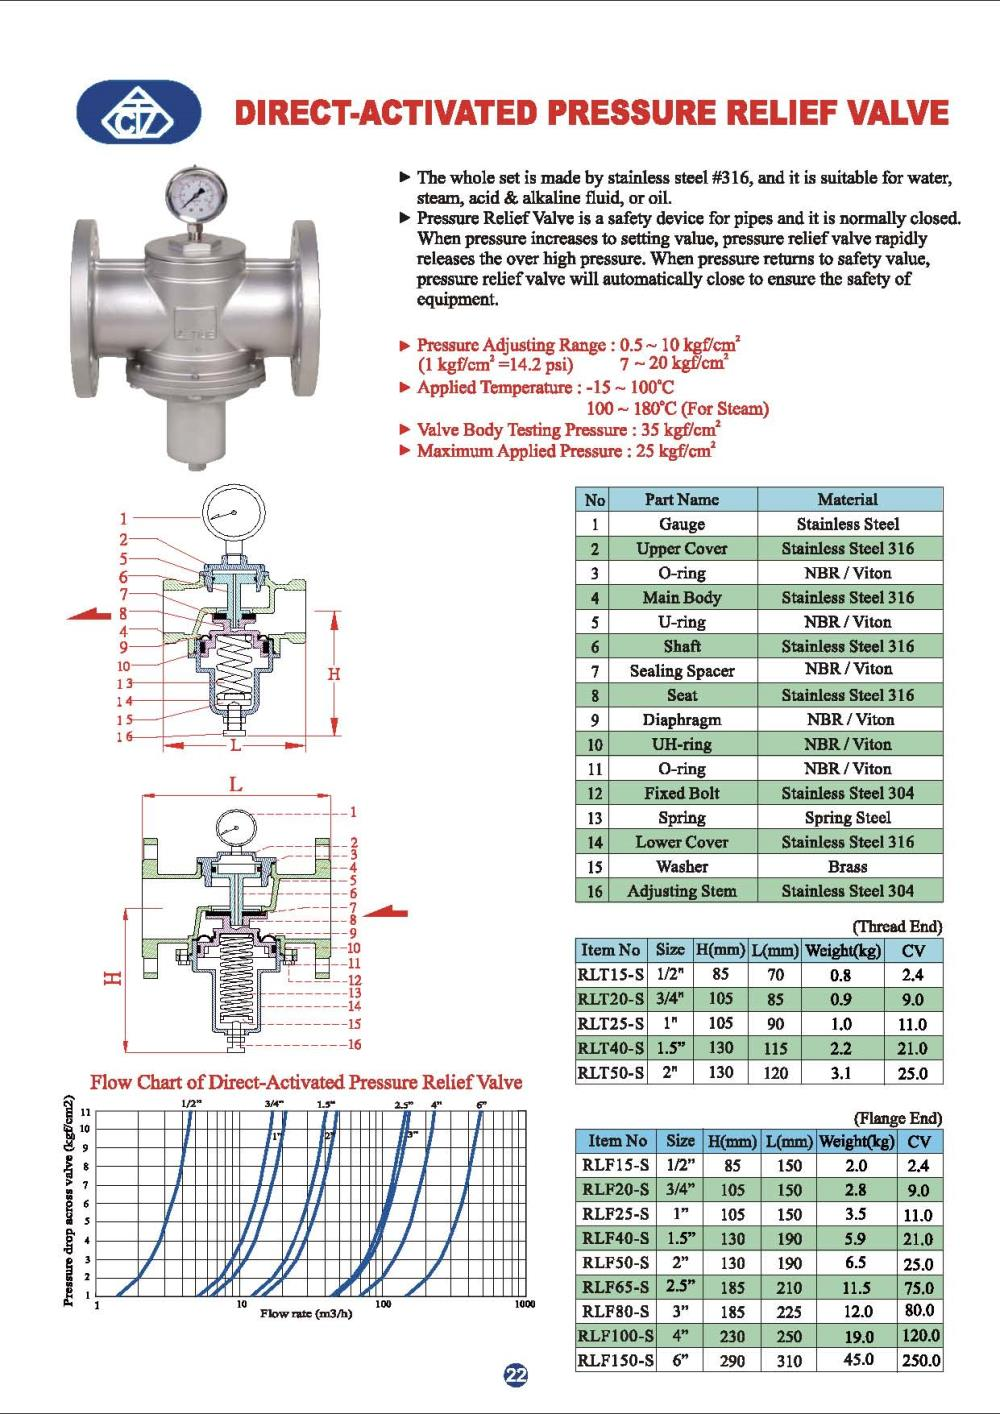 Z-Tide : RLT , Activated Pressure Relief Valve